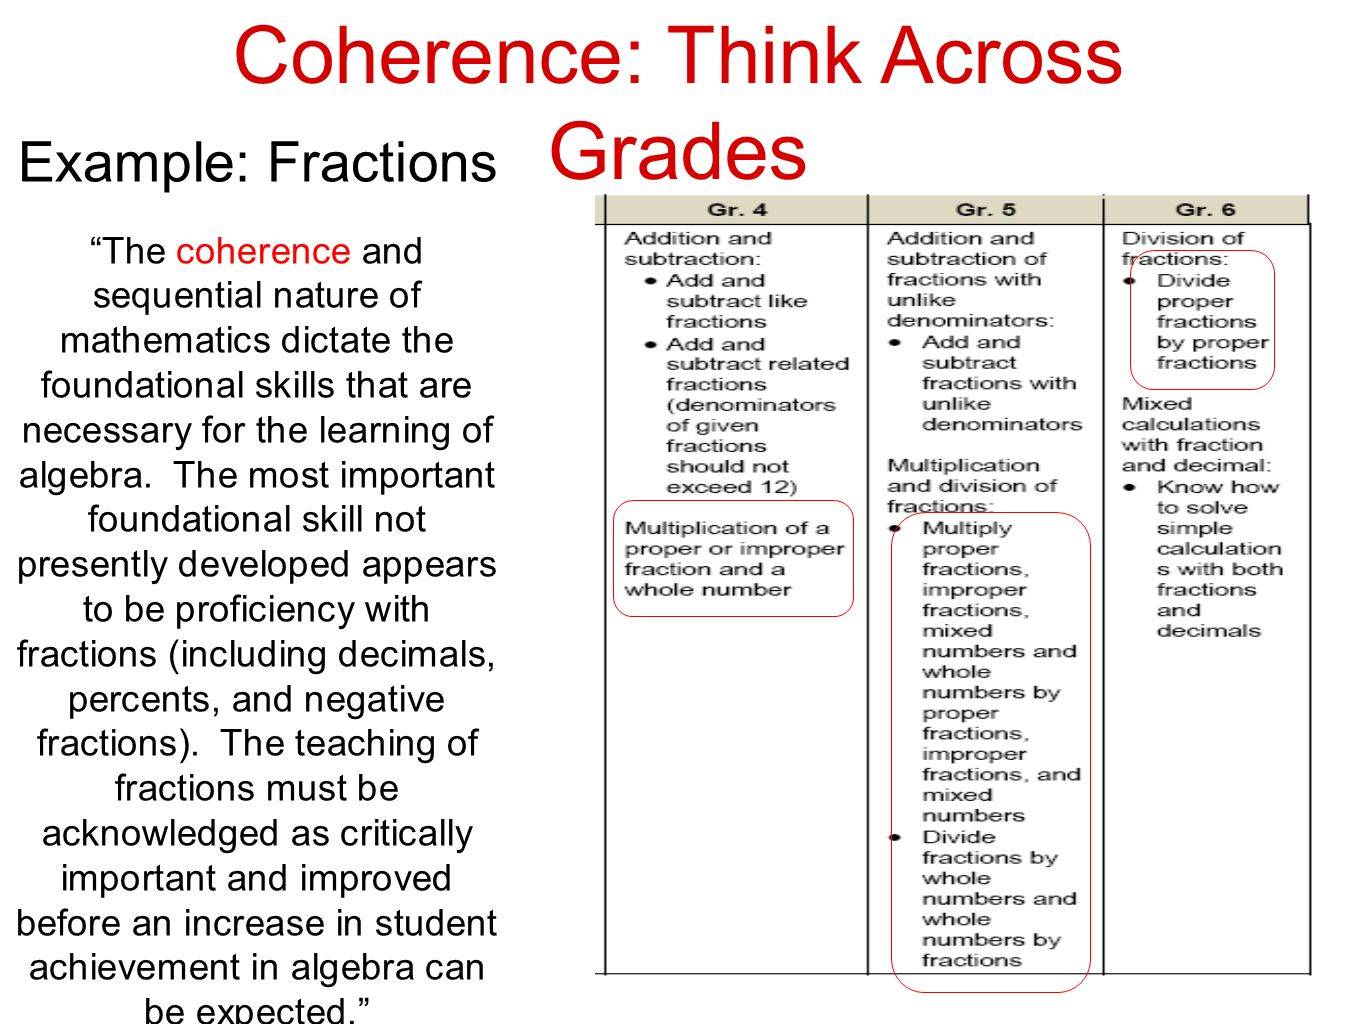 Coherence: Think Across Grades Example: Fractions The coherence and sequential nature of mathematics dictate the foundational skills that are necessary for the learning of algebra.